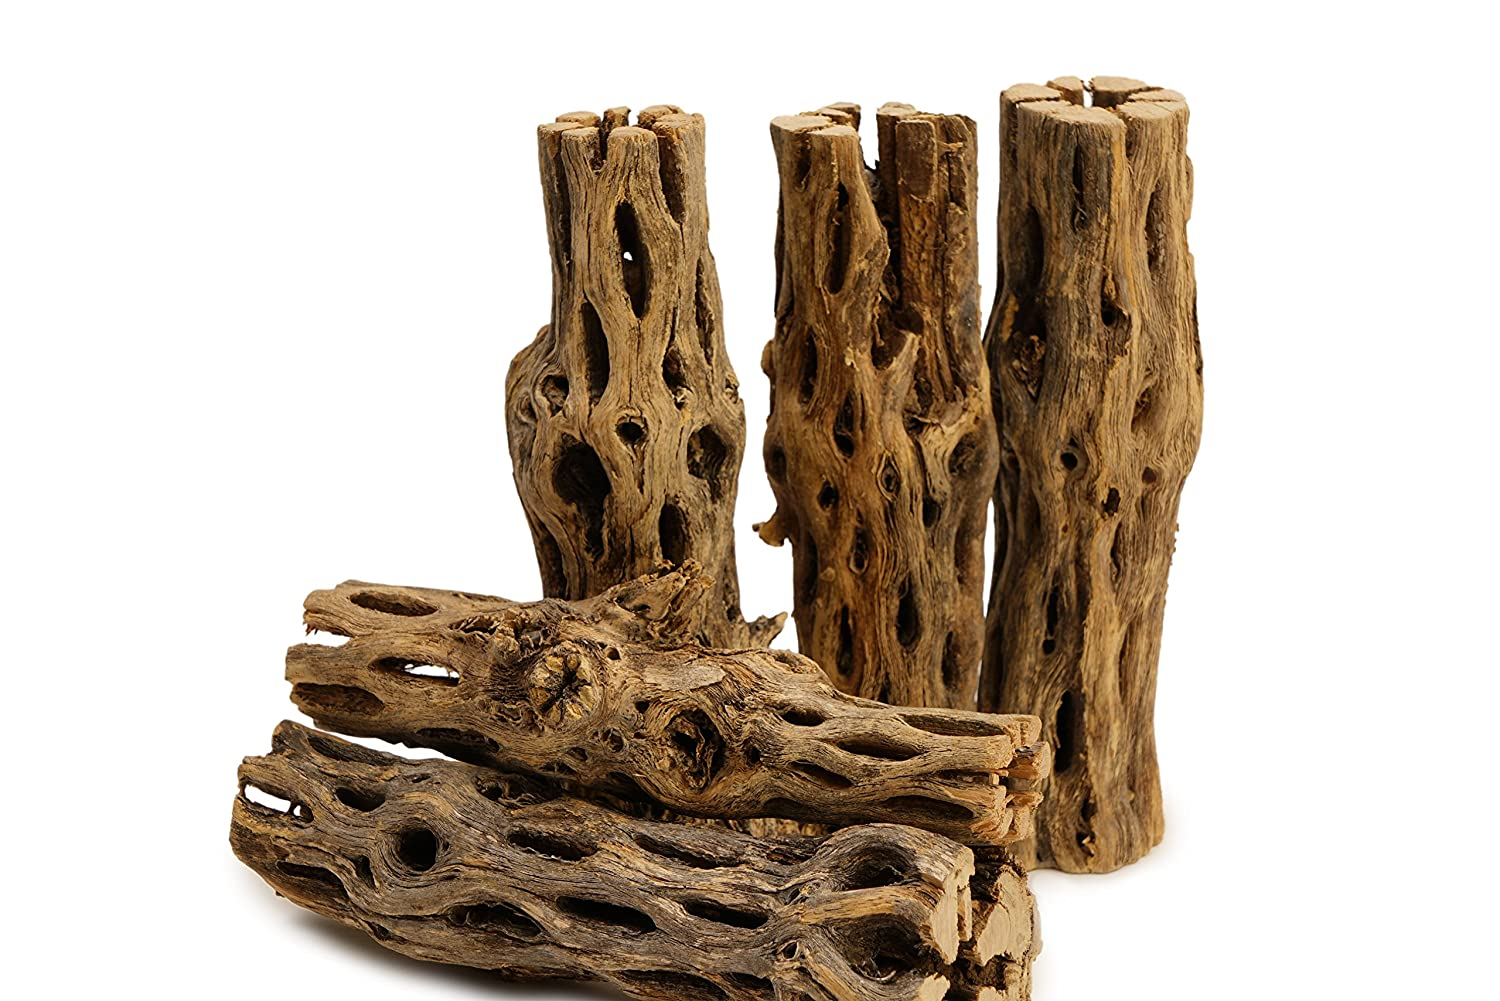 "5 Pieces 5-6"" Long Natural Cholla Wood for Aquarium Decoration by NilocG Aquatics"